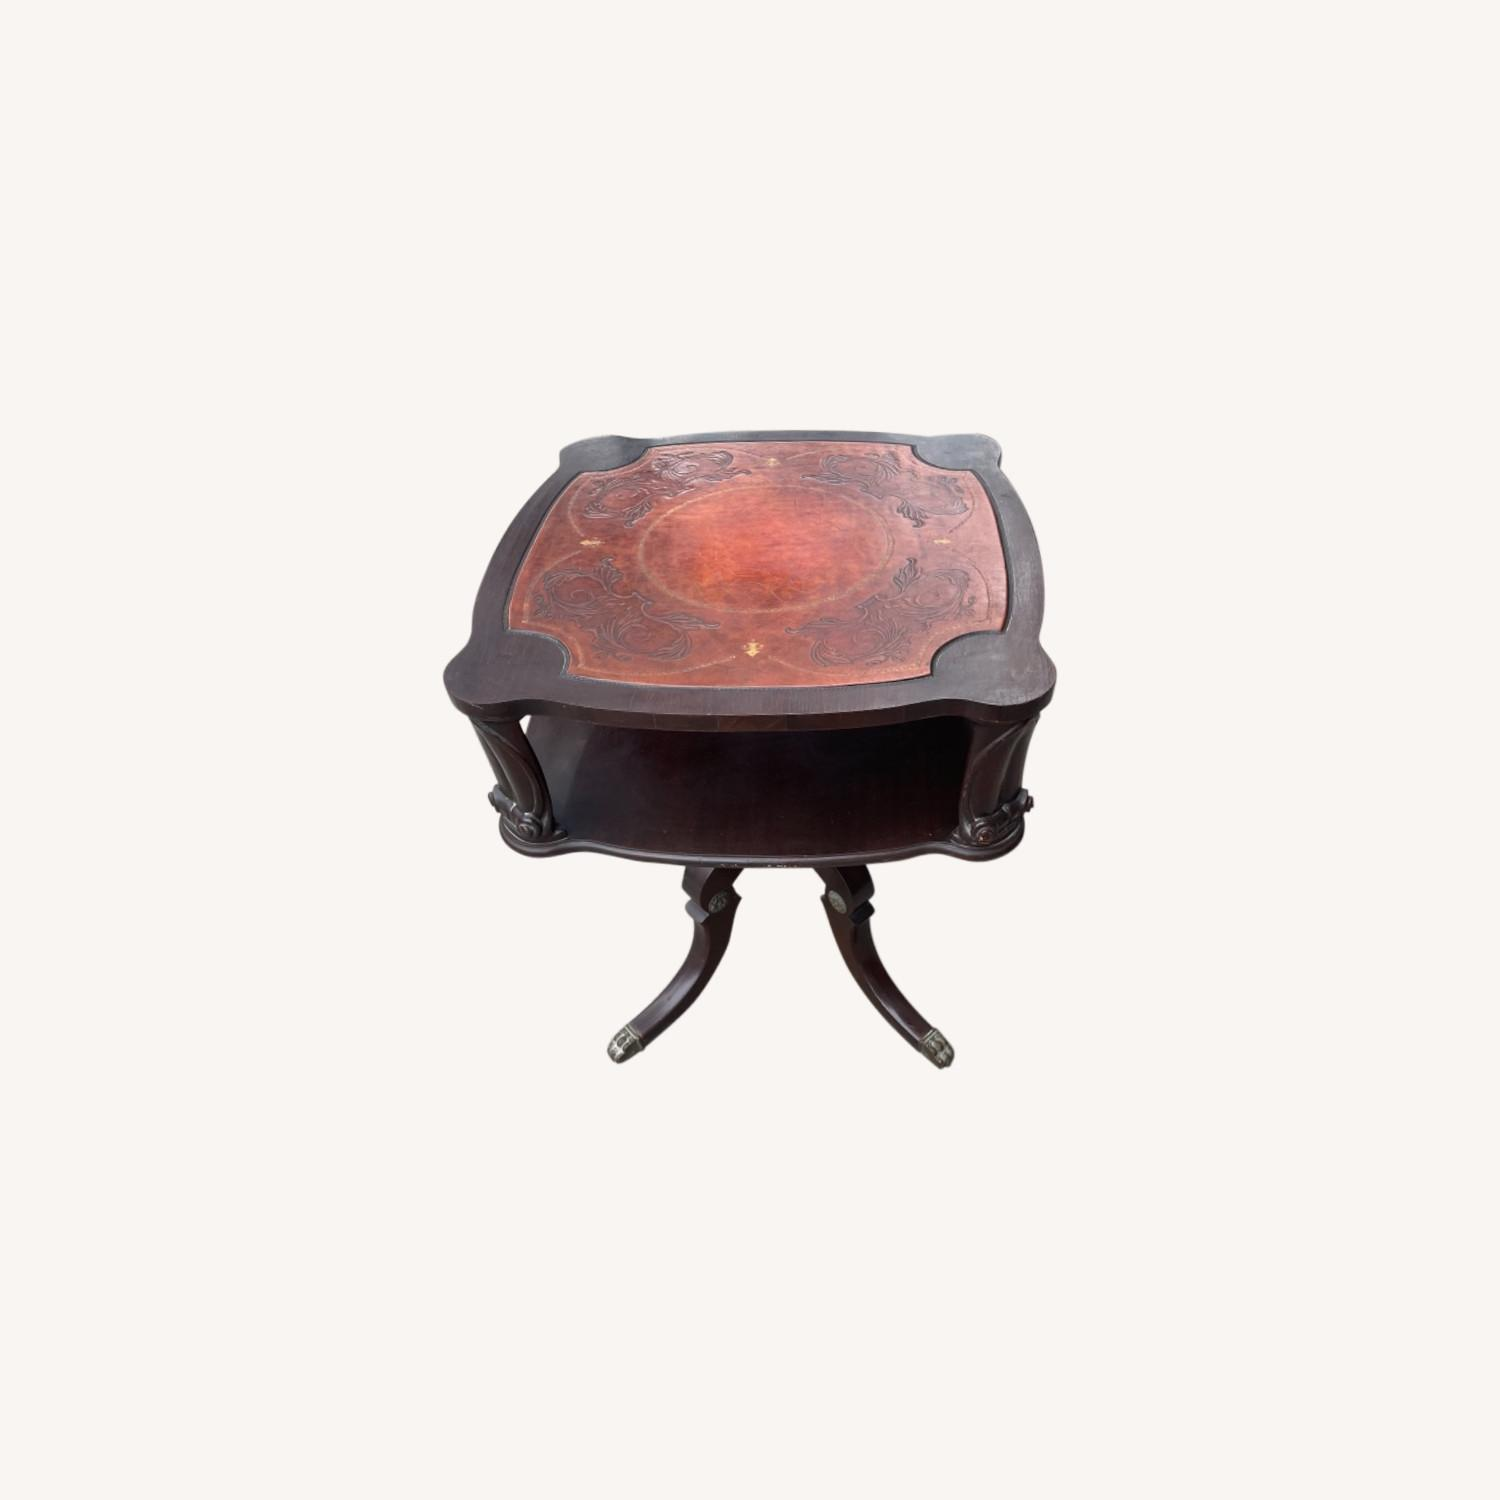 Adams Always 1930s Decorative Leather Top Table - image-0